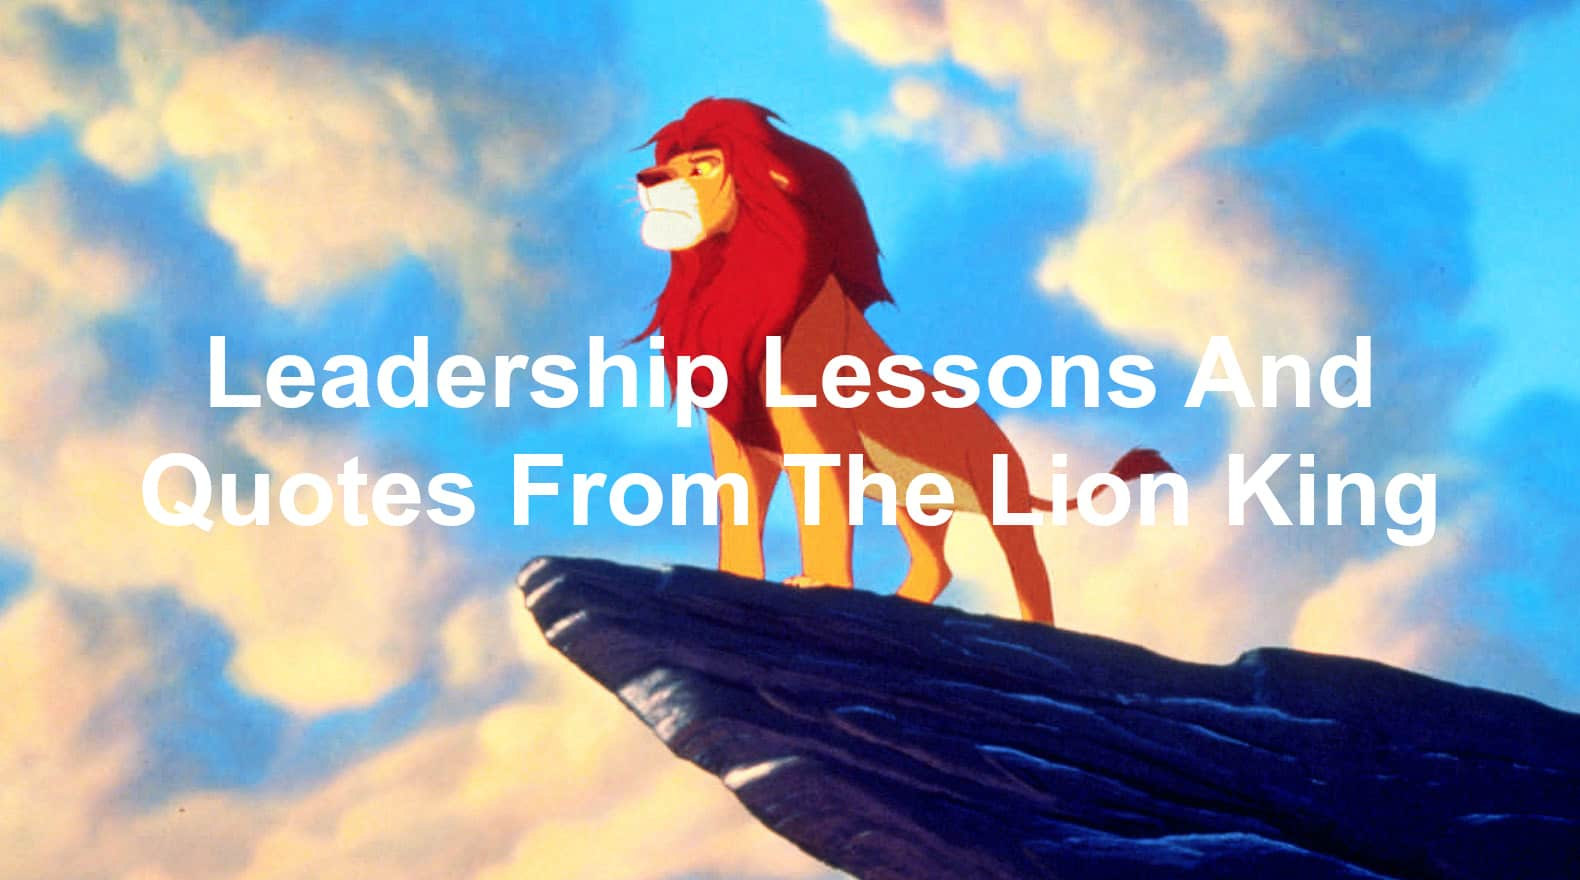 Leadership Lessons And Quotes From Disneys The Lion King Joseph